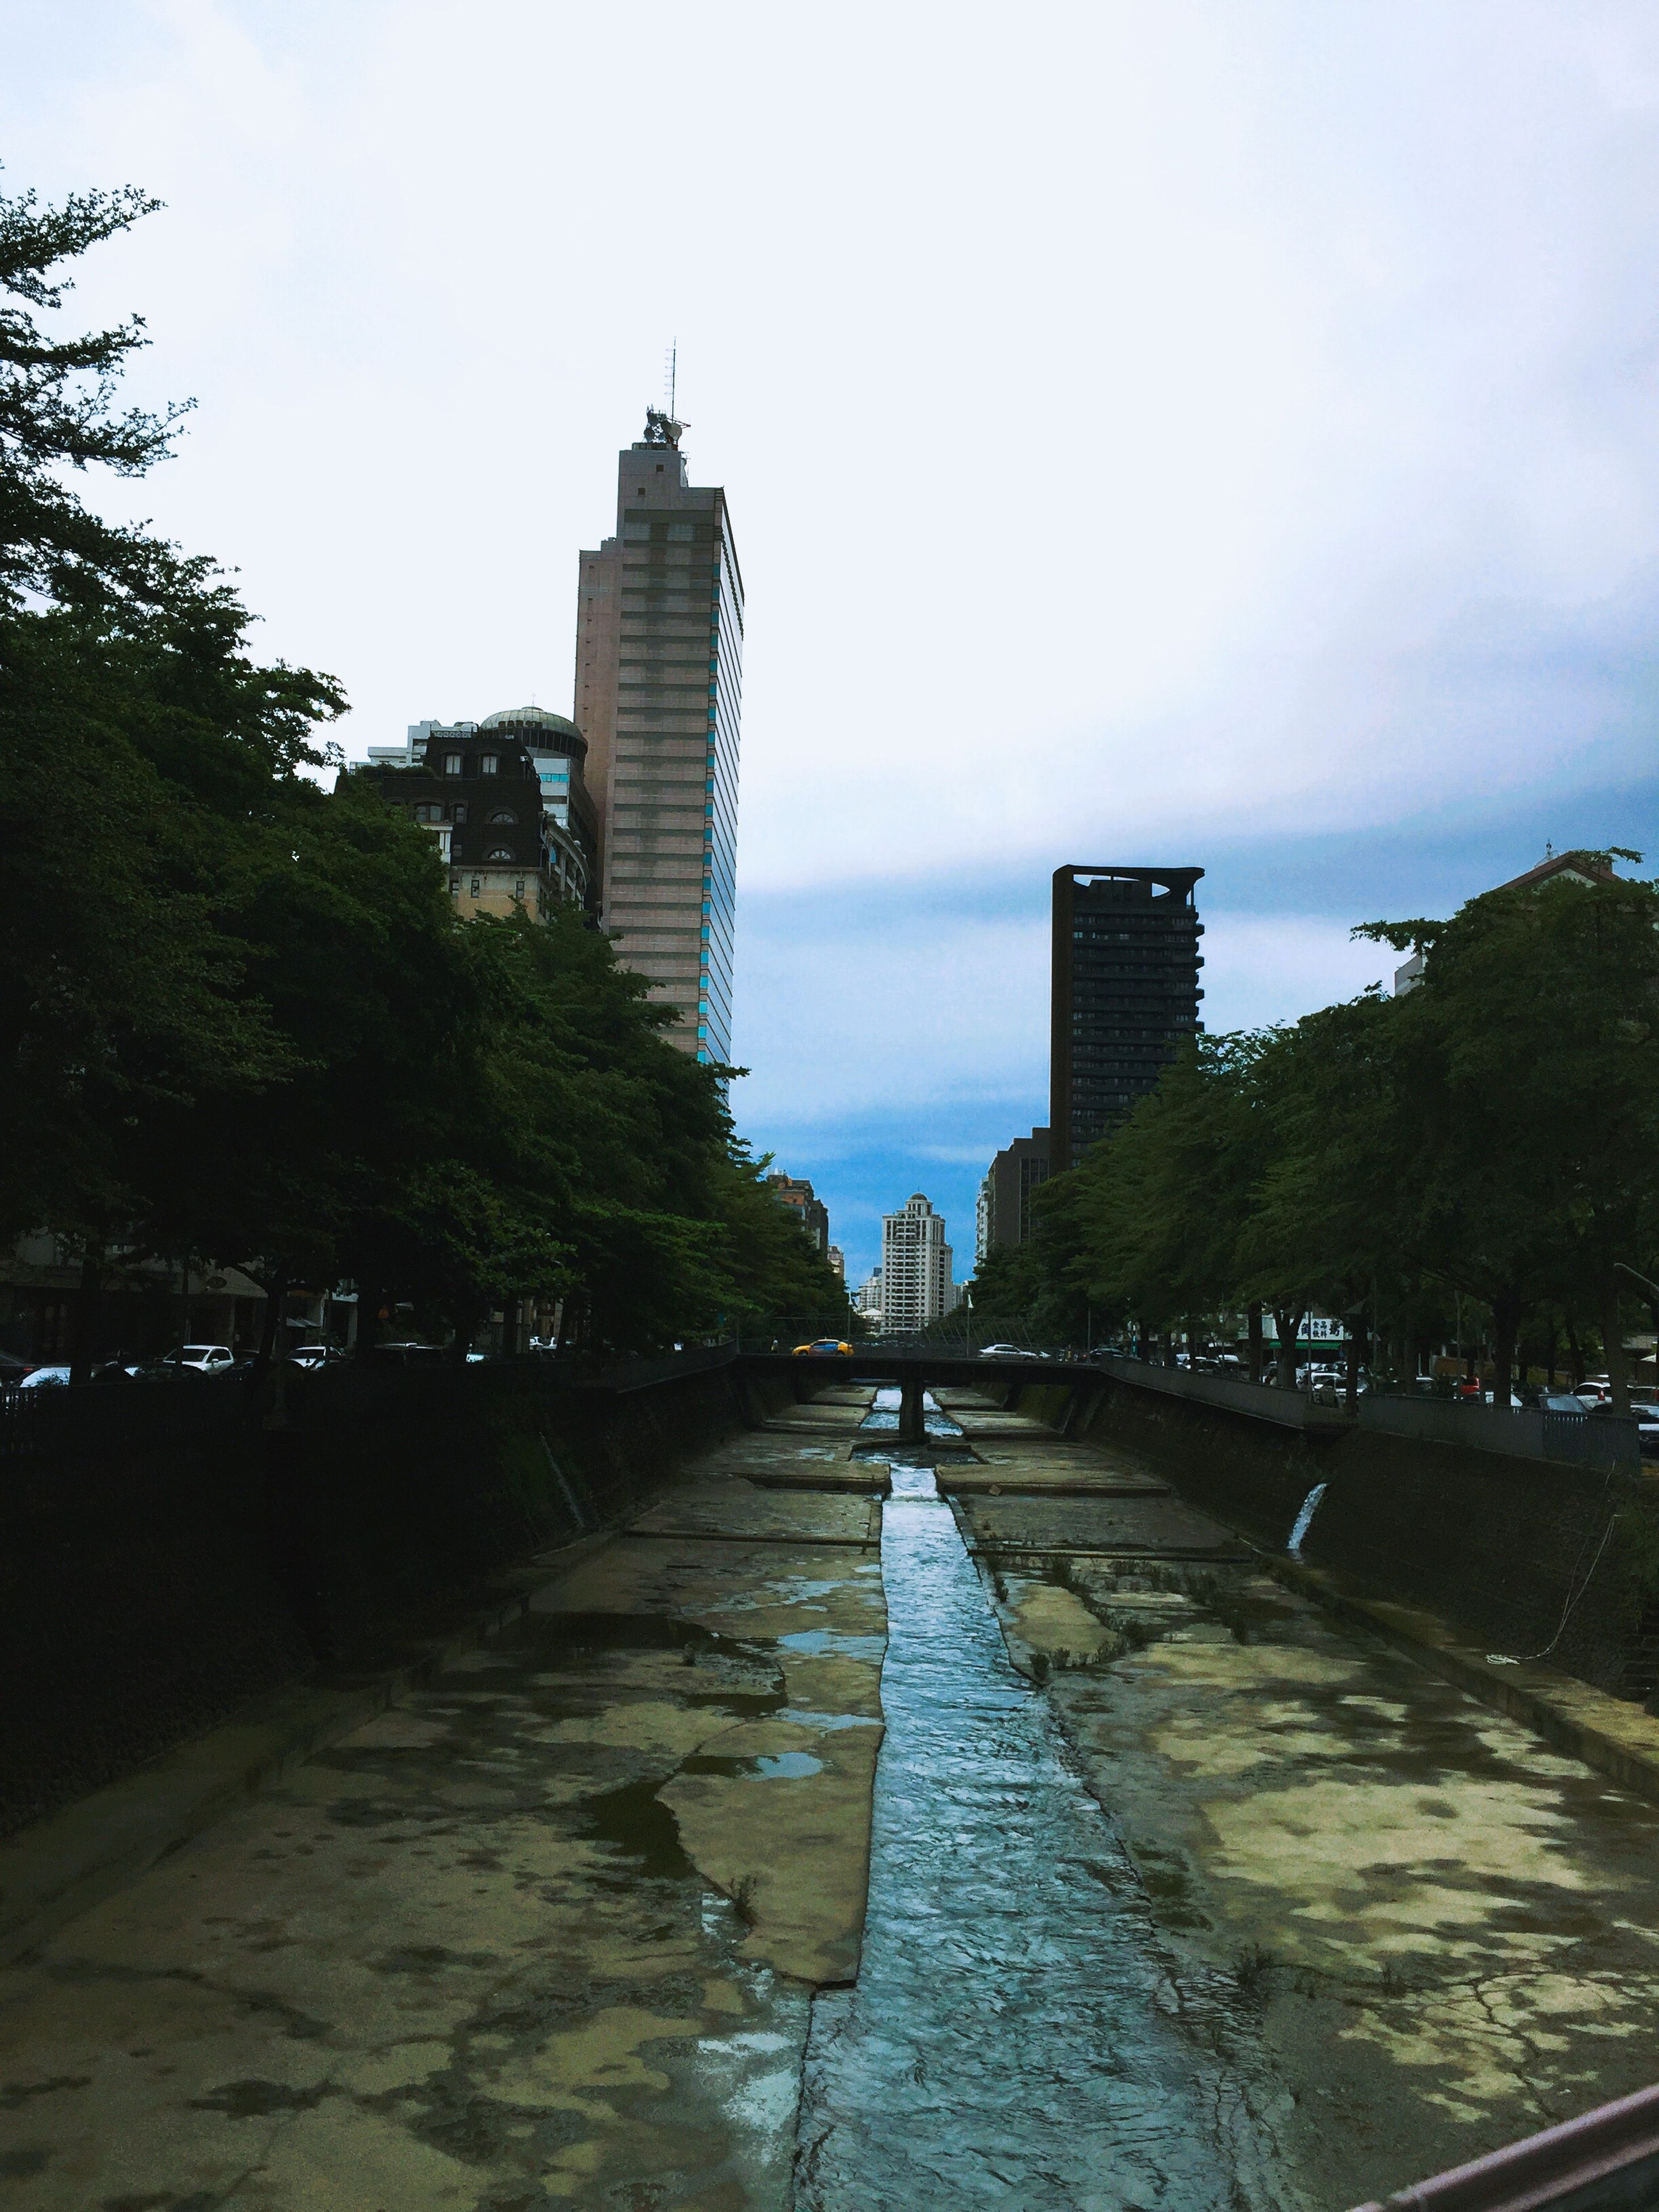 architecture, building exterior, skyscraper, built structure, city, sky, tree, tower, water, reflection, modern, river, outdoors, cityscape, growth, travel destinations, no people, urban skyline, day, nature